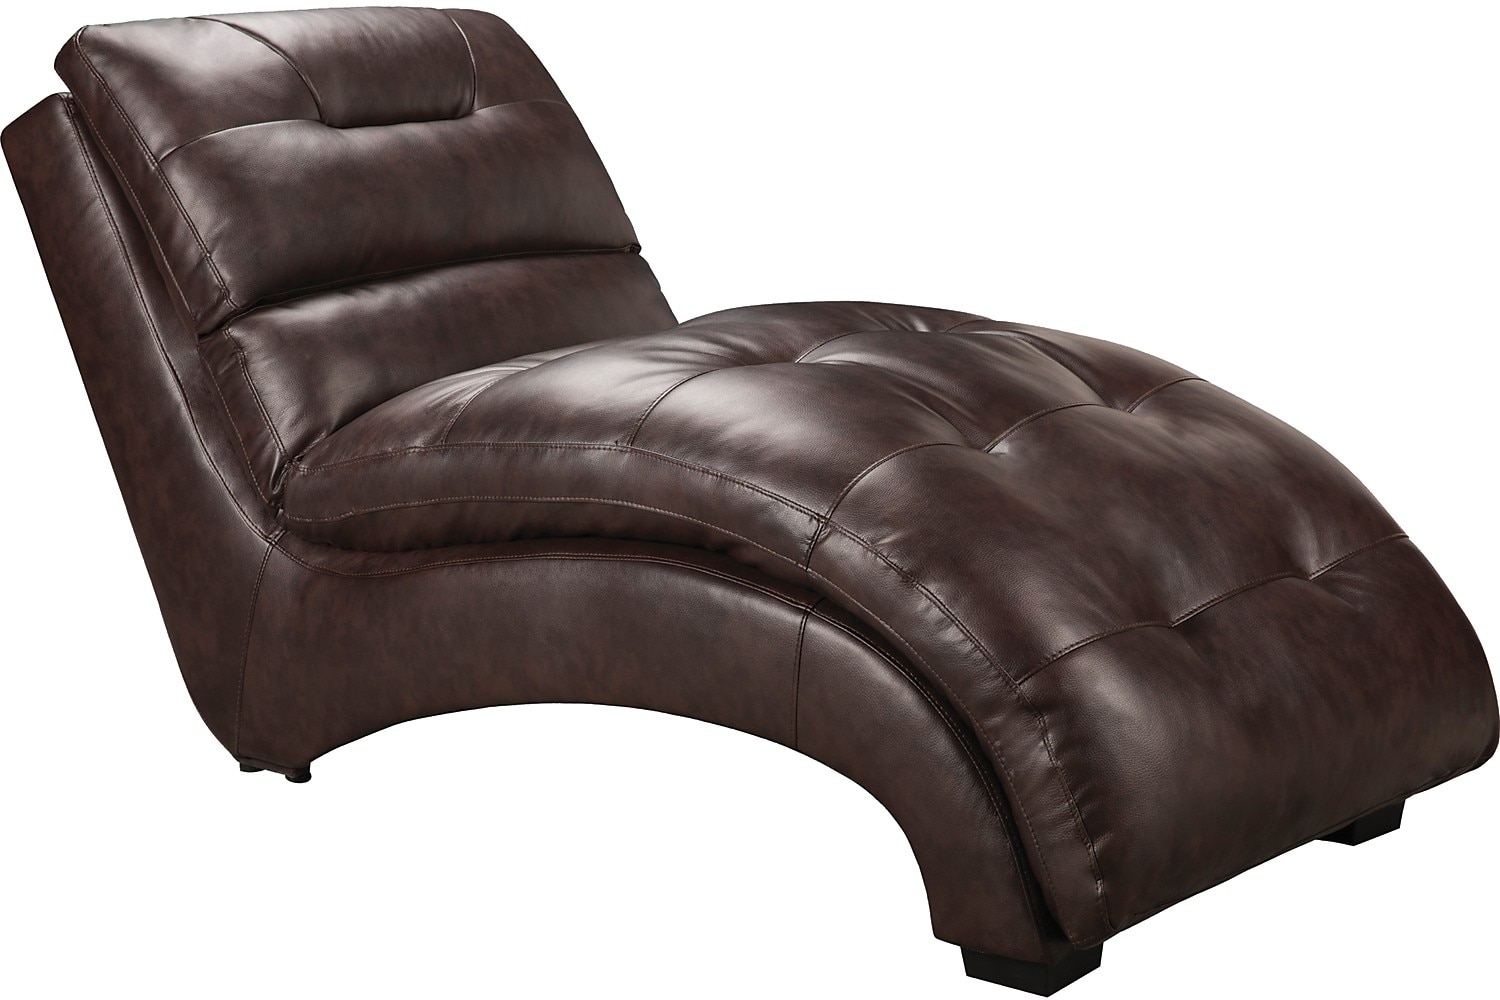 Living Room Furniture - Charlie Faux Leather Curved Chaise - Brown